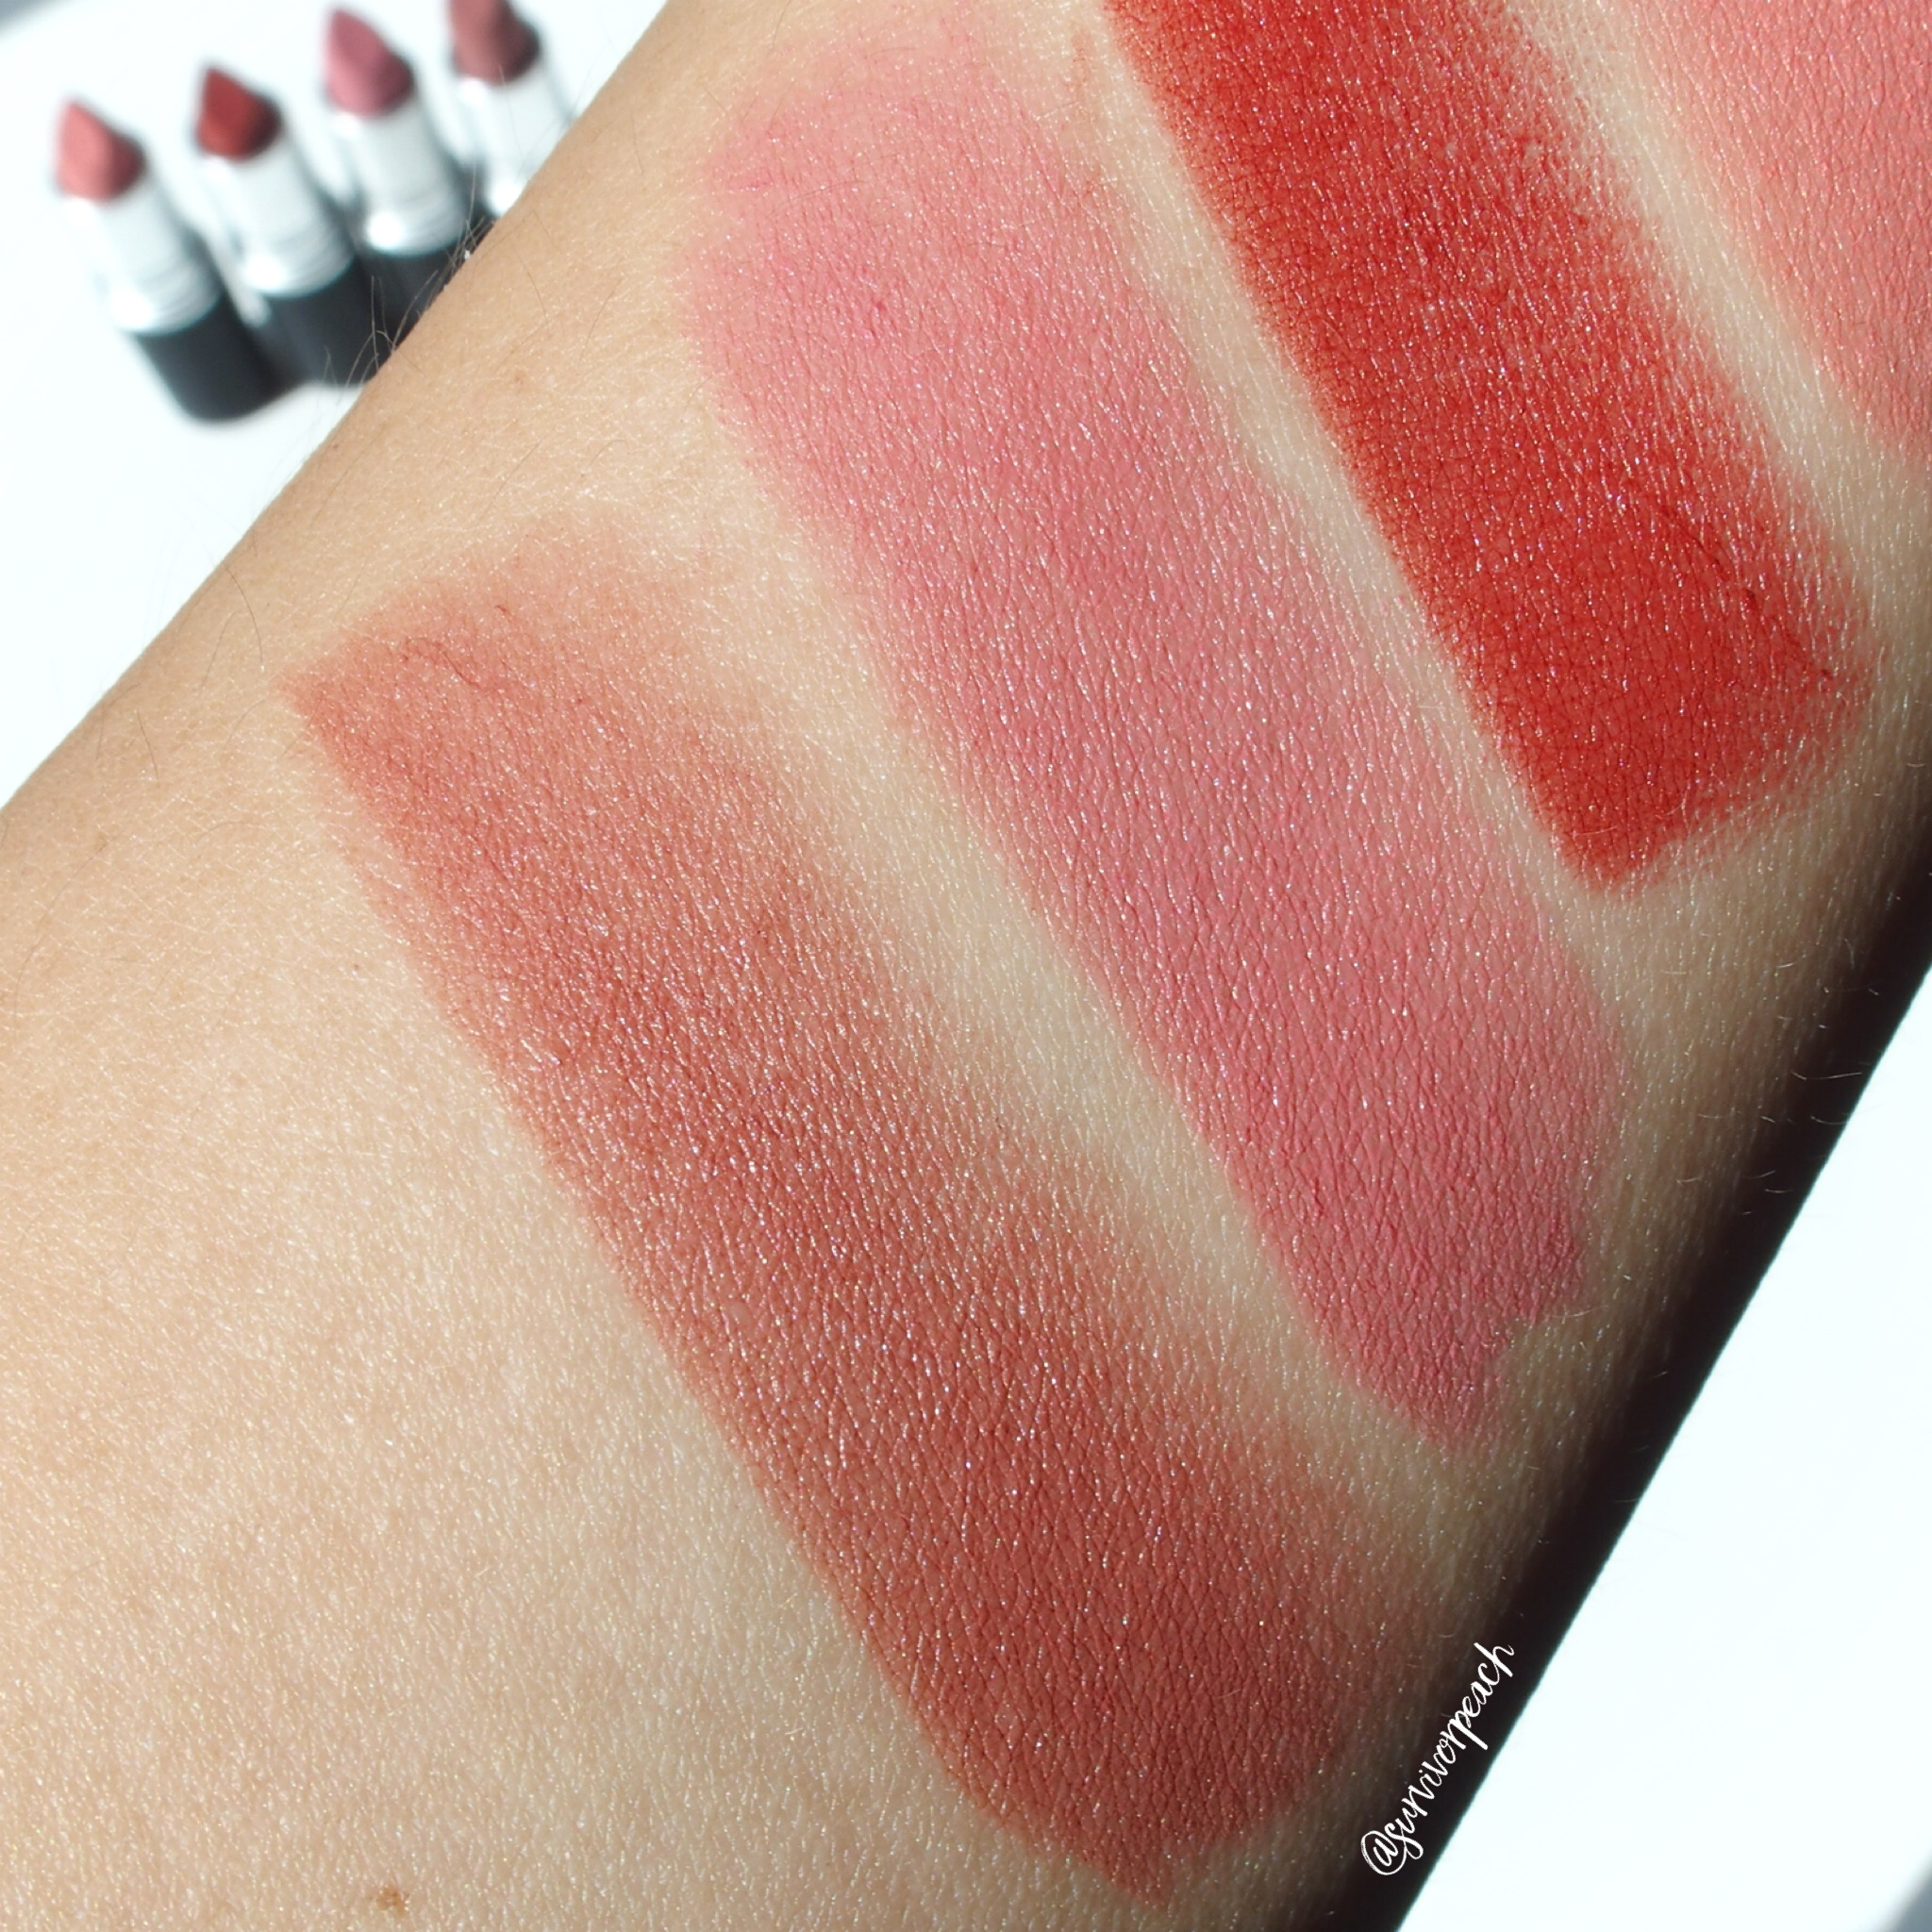 Mac Powder KISS Lipsticks swatches - Sultry Move, Sultriness